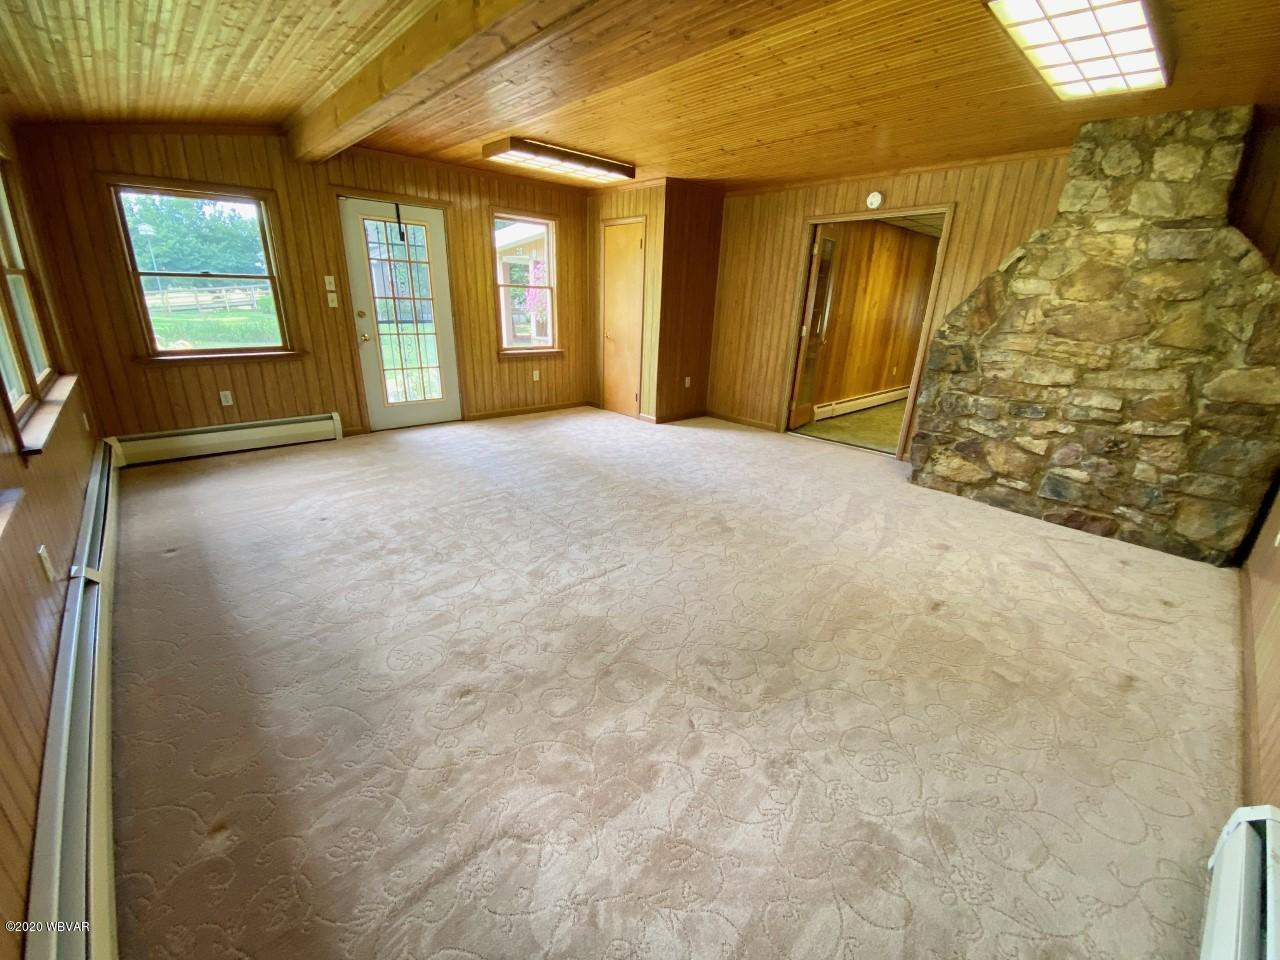 207 COLD SPRINGS ROAD, Montoursville, PA 17754, 4 Bedrooms Bedrooms, ,1.5 BathroomsBathrooms,Residential,For sale,COLD SPRINGS,WB-90790